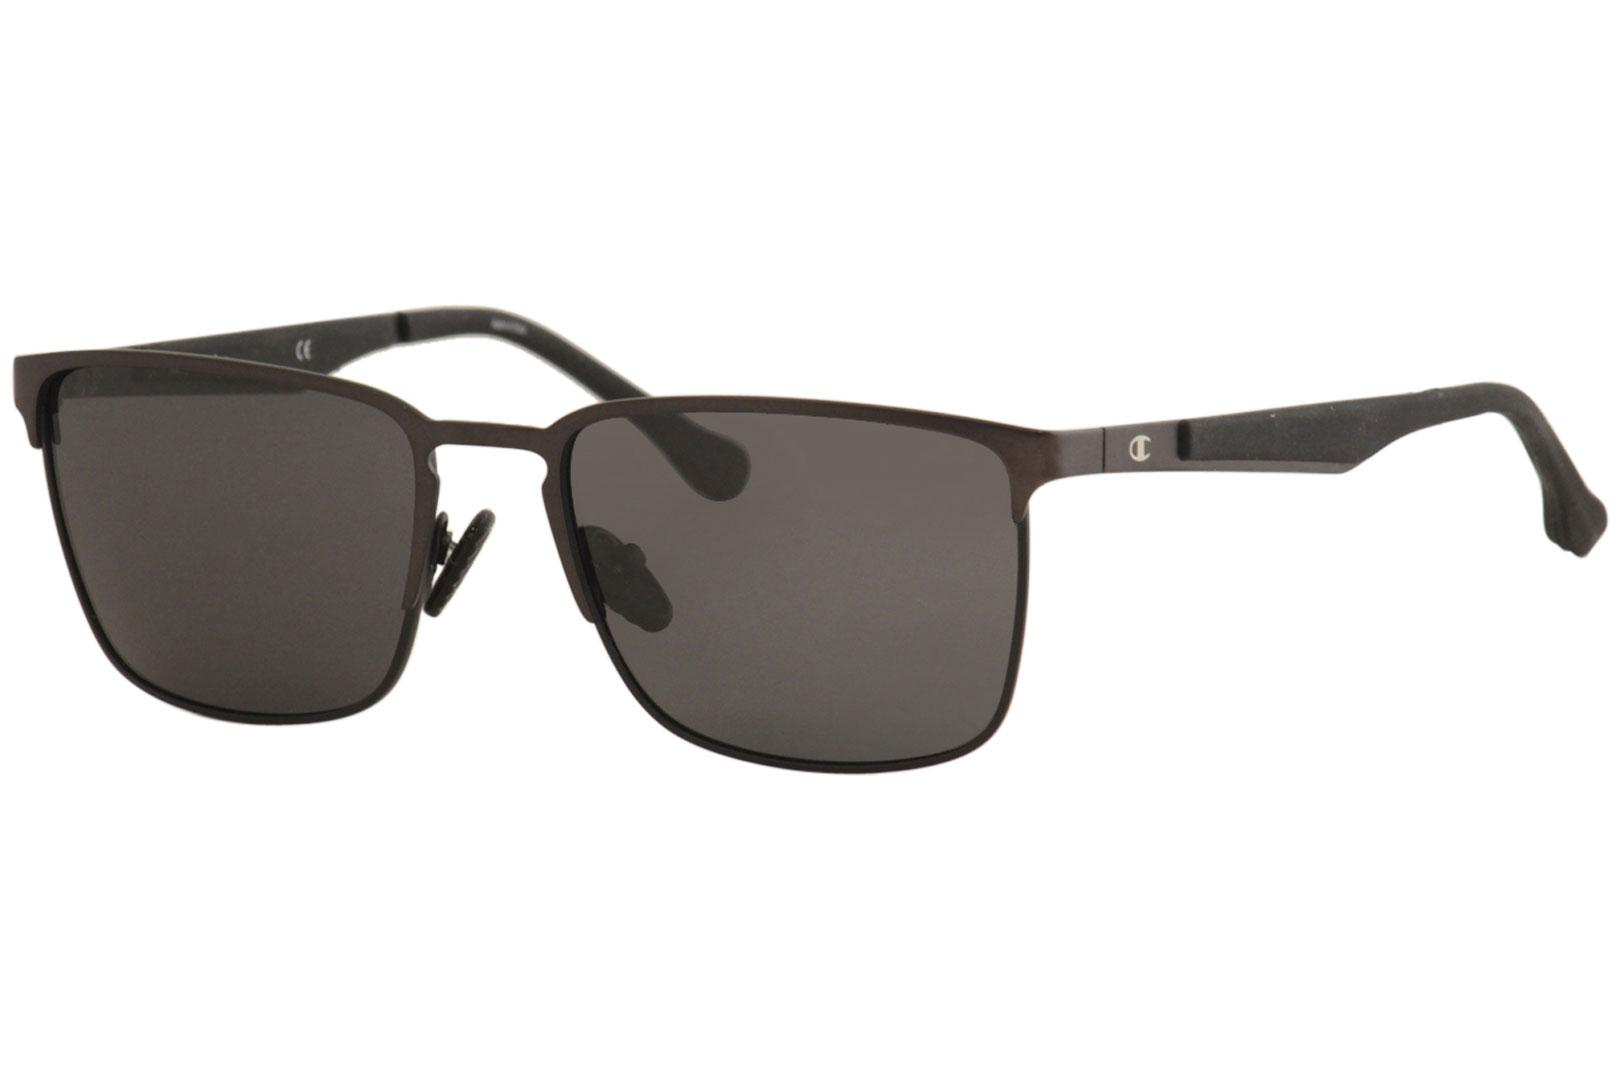 Image of - Black Gunmetal/Polarized Grey   C02 - Lens 55 Bridge 18 Temple 140mm